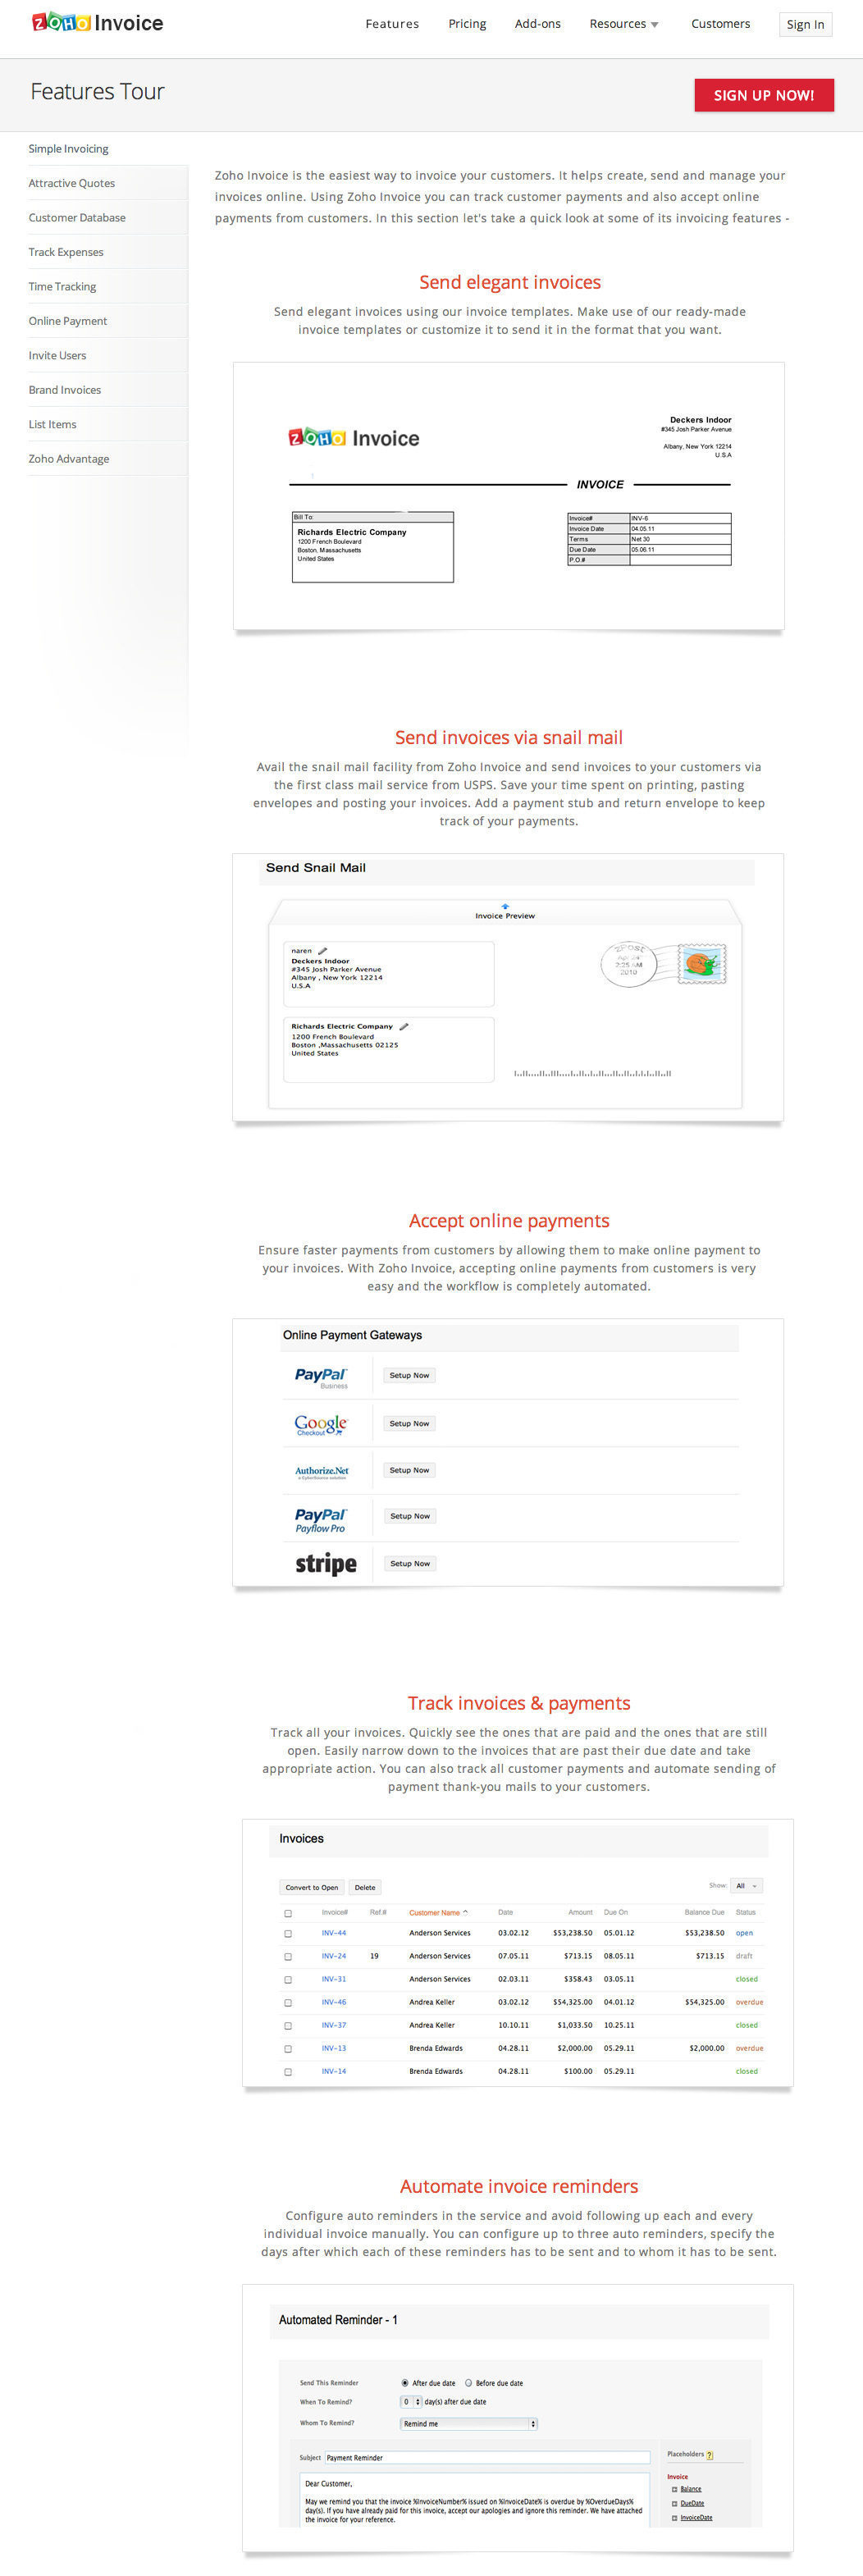 Weverducreus  Terrific Top  Complaints And Reviews About Zoho Invoice With Fascinating Zoho Invoice Pricing Zoho Invoice  Simple Invoicing  With Amazing Purchase Invoice Processing Also Invoicing Made Simple In Addition Invoice Ledger And Rent Invoice Format As Well As What Is An Invoice Payment Additionally Make A Invoice Template From Consumeraffairscom With Weverducreus  Fascinating Top  Complaints And Reviews About Zoho Invoice With Amazing Zoho Invoice Pricing Zoho Invoice  Simple Invoicing  And Terrific Purchase Invoice Processing Also Invoicing Made Simple In Addition Invoice Ledger From Consumeraffairscom